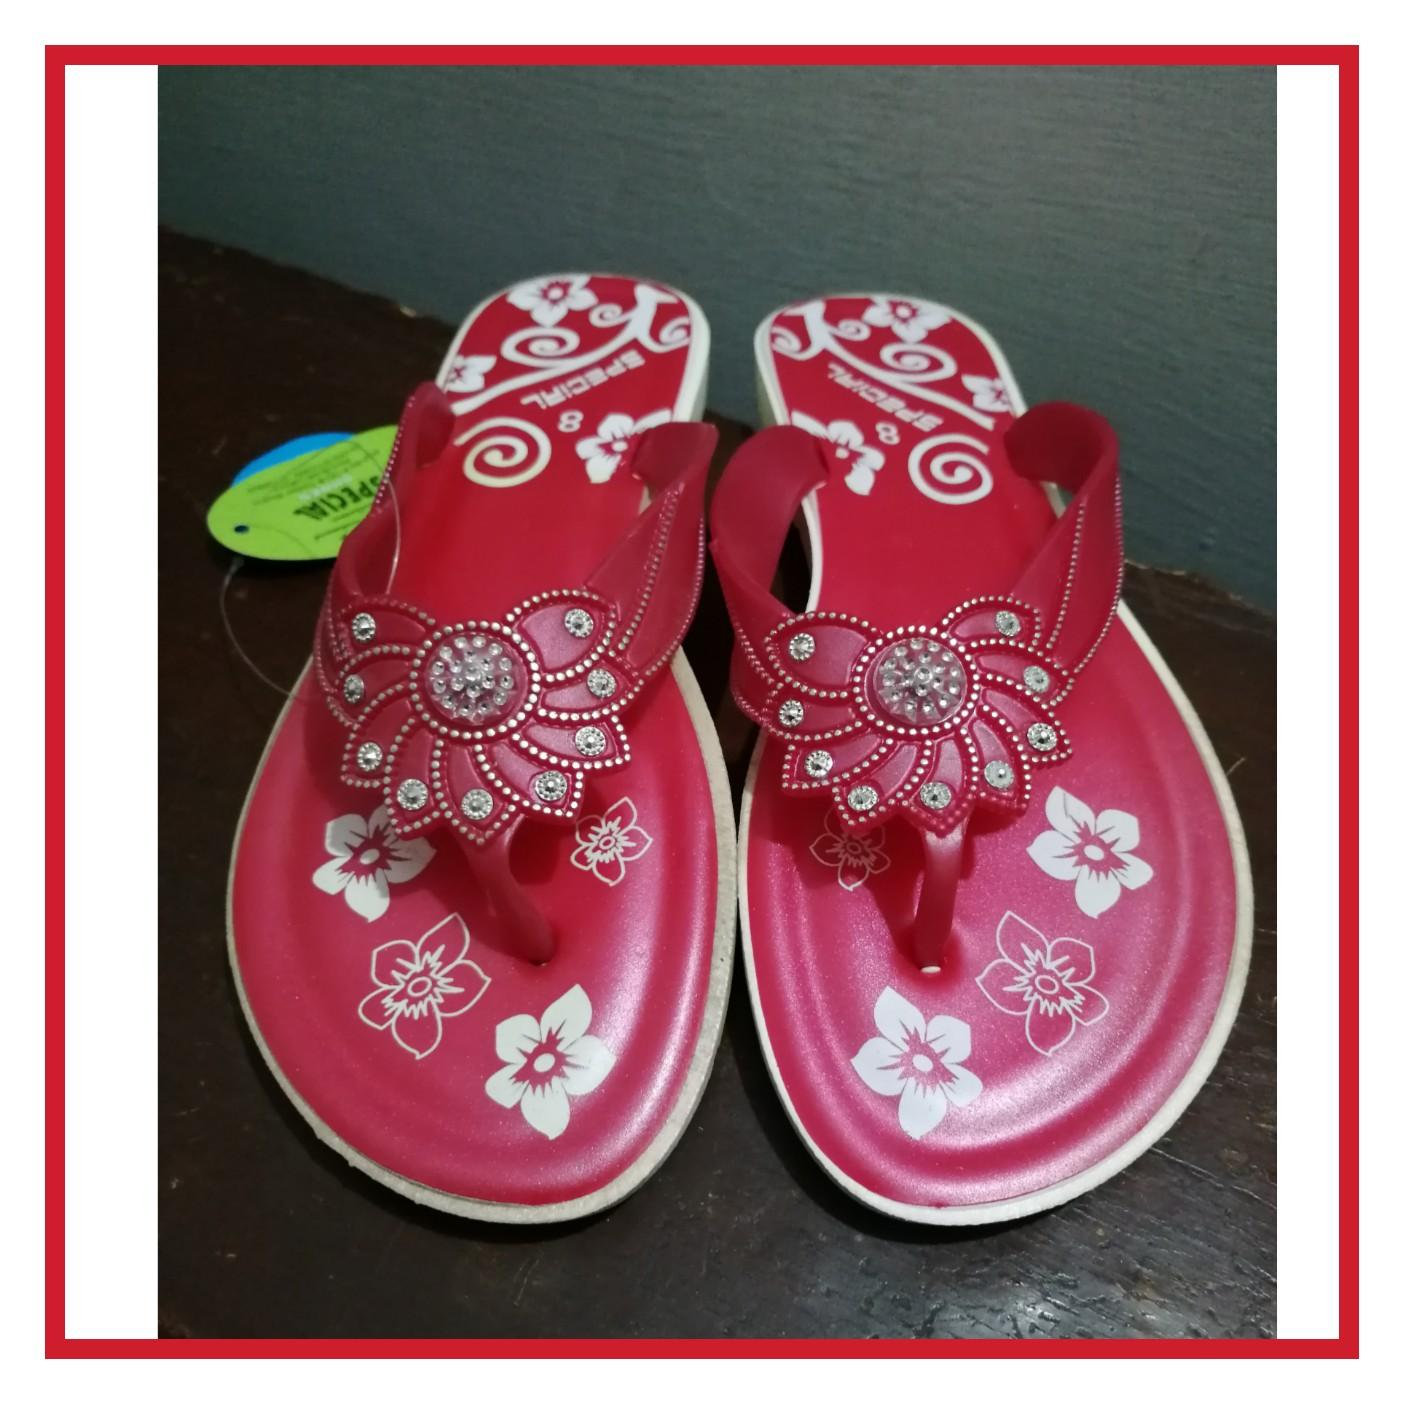 e69869d3382ae1 Ladies New Style Casual Slippers for Women - Soft & Comfortable - High  Quality - Low